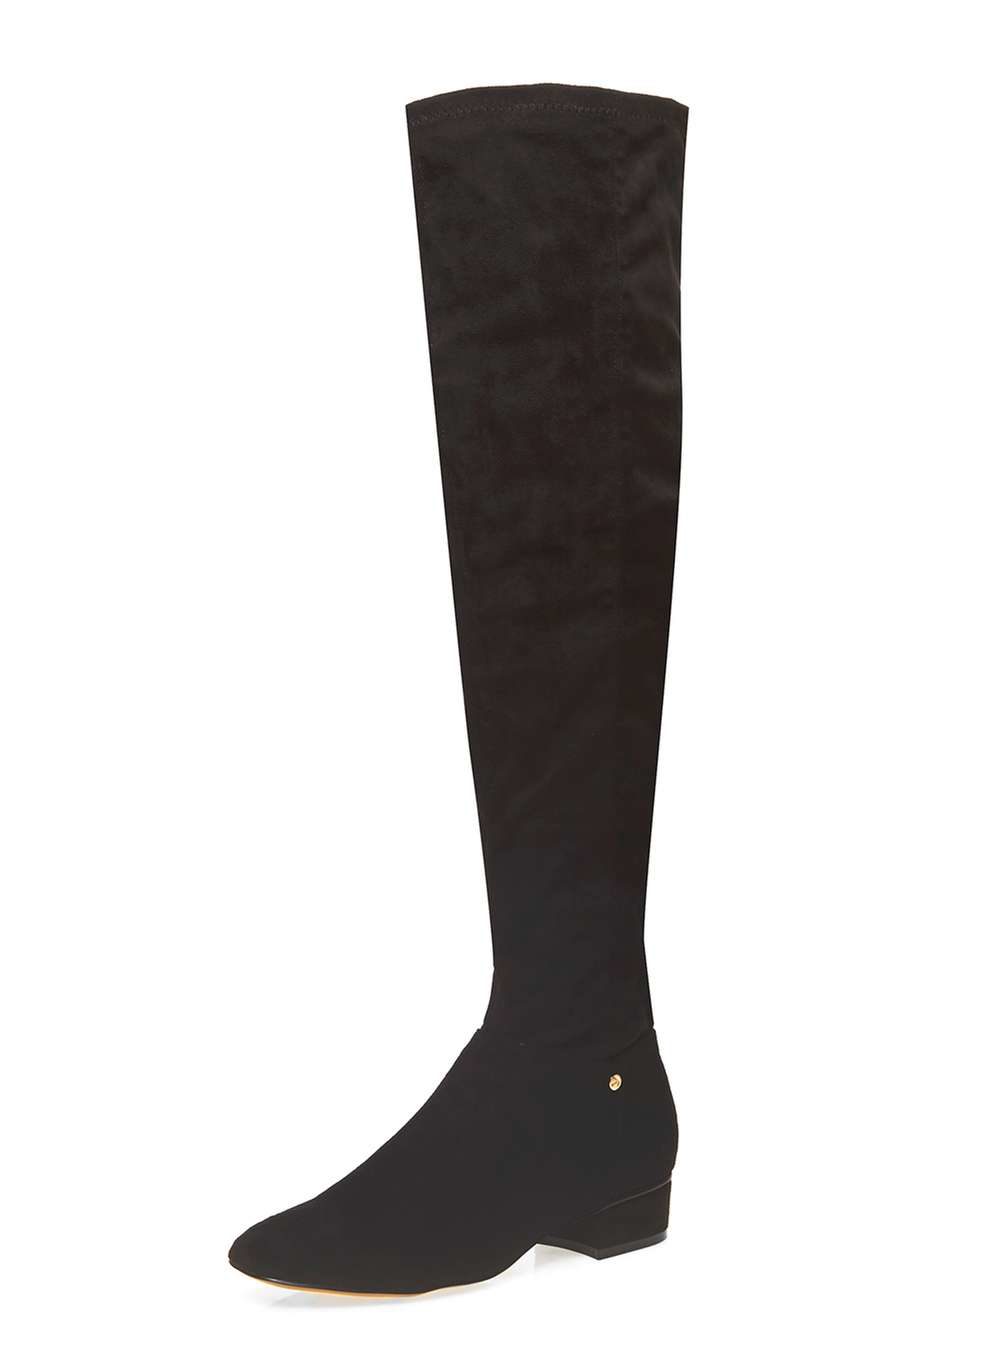 dorothy perkins ravel the knee boots in black lyst